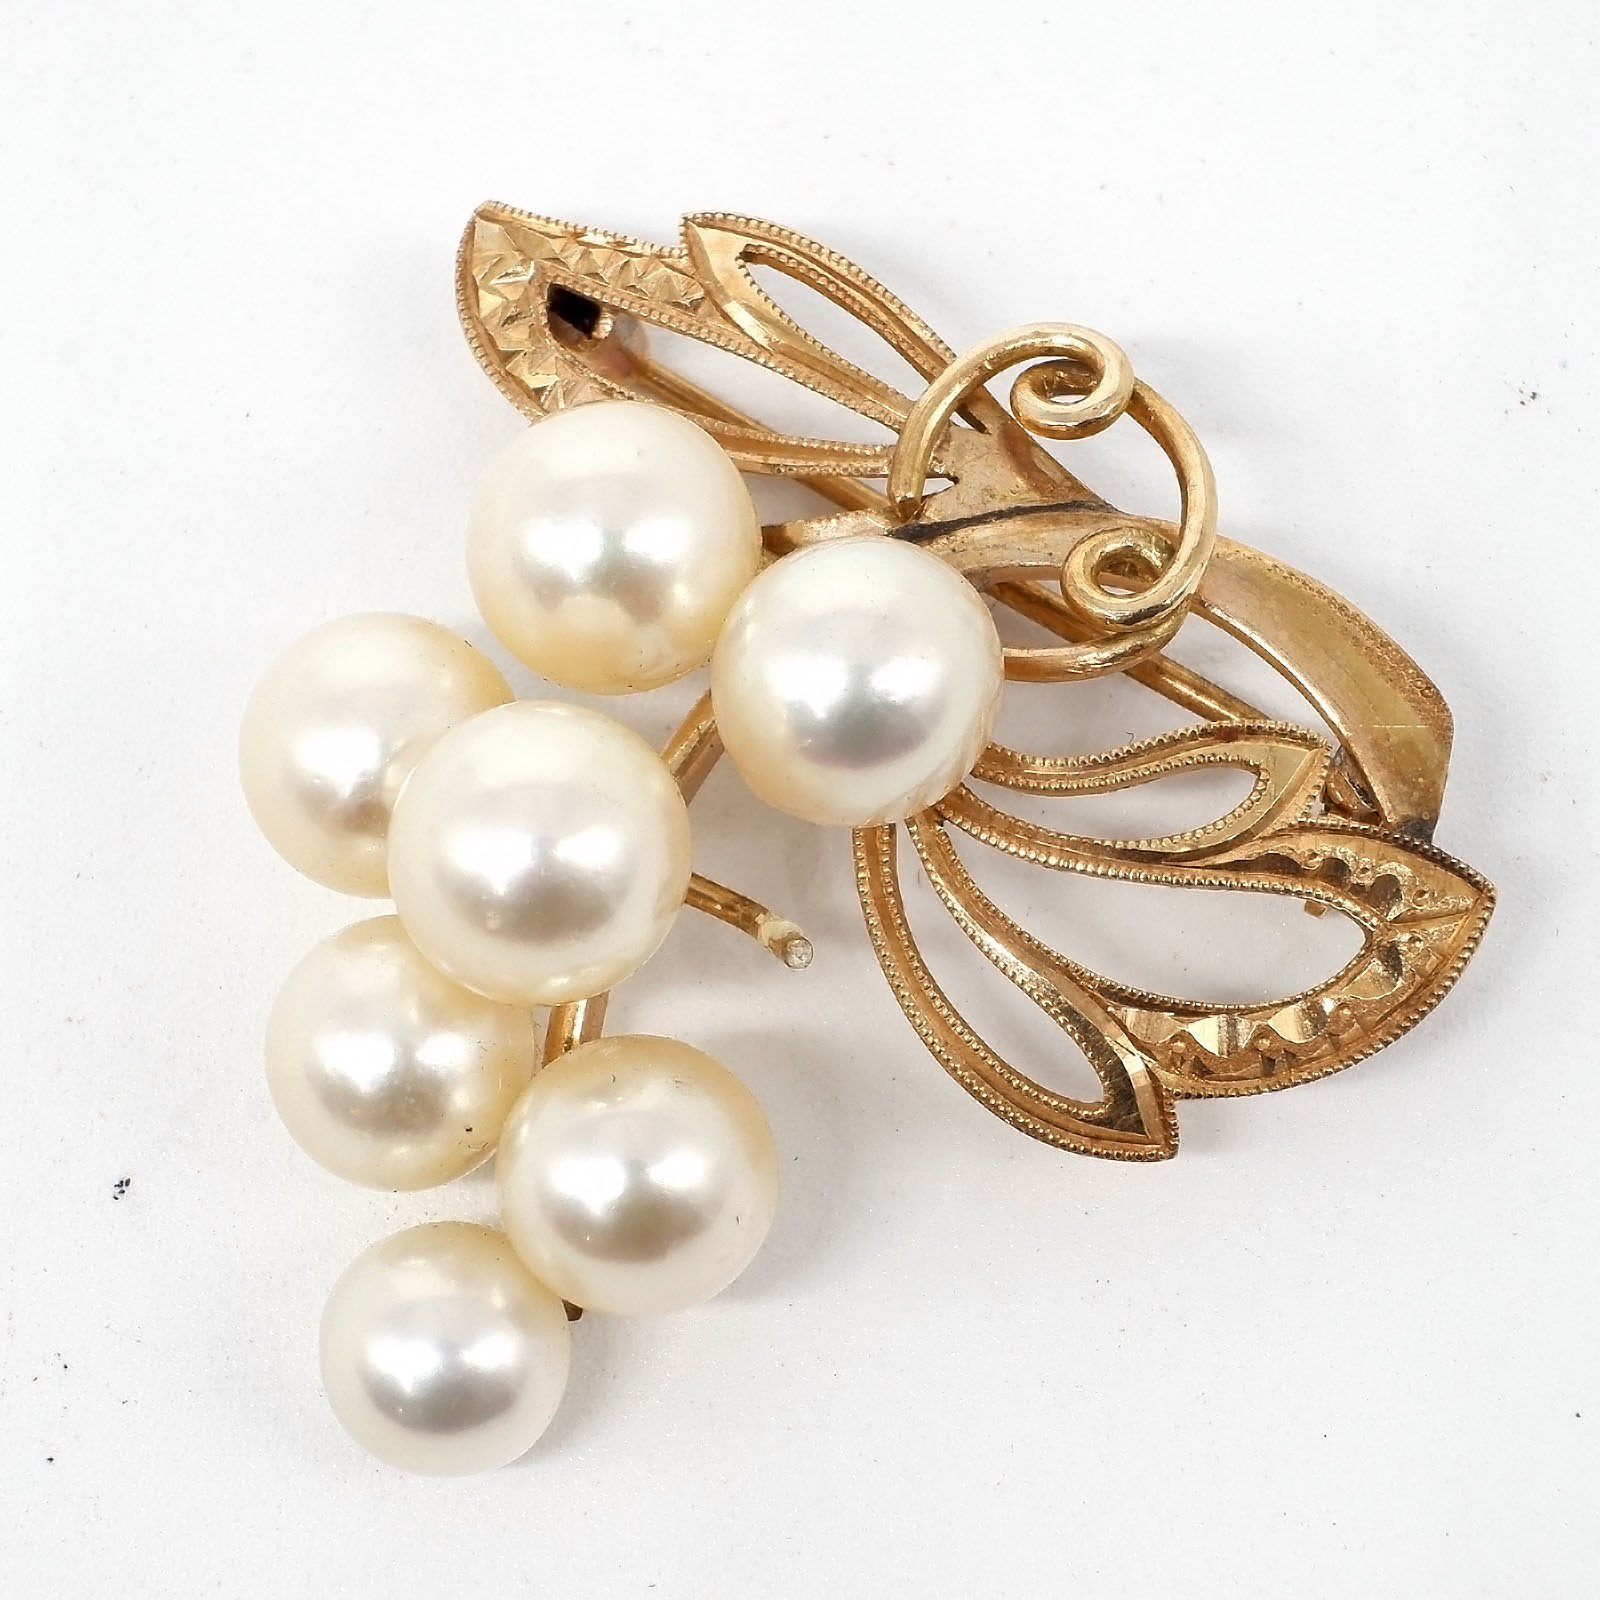 '14ct Yellow Gold Pearl Brooch,  Bunch of Grapes Design with Seven Round Cultured Pearls, 5.7g'